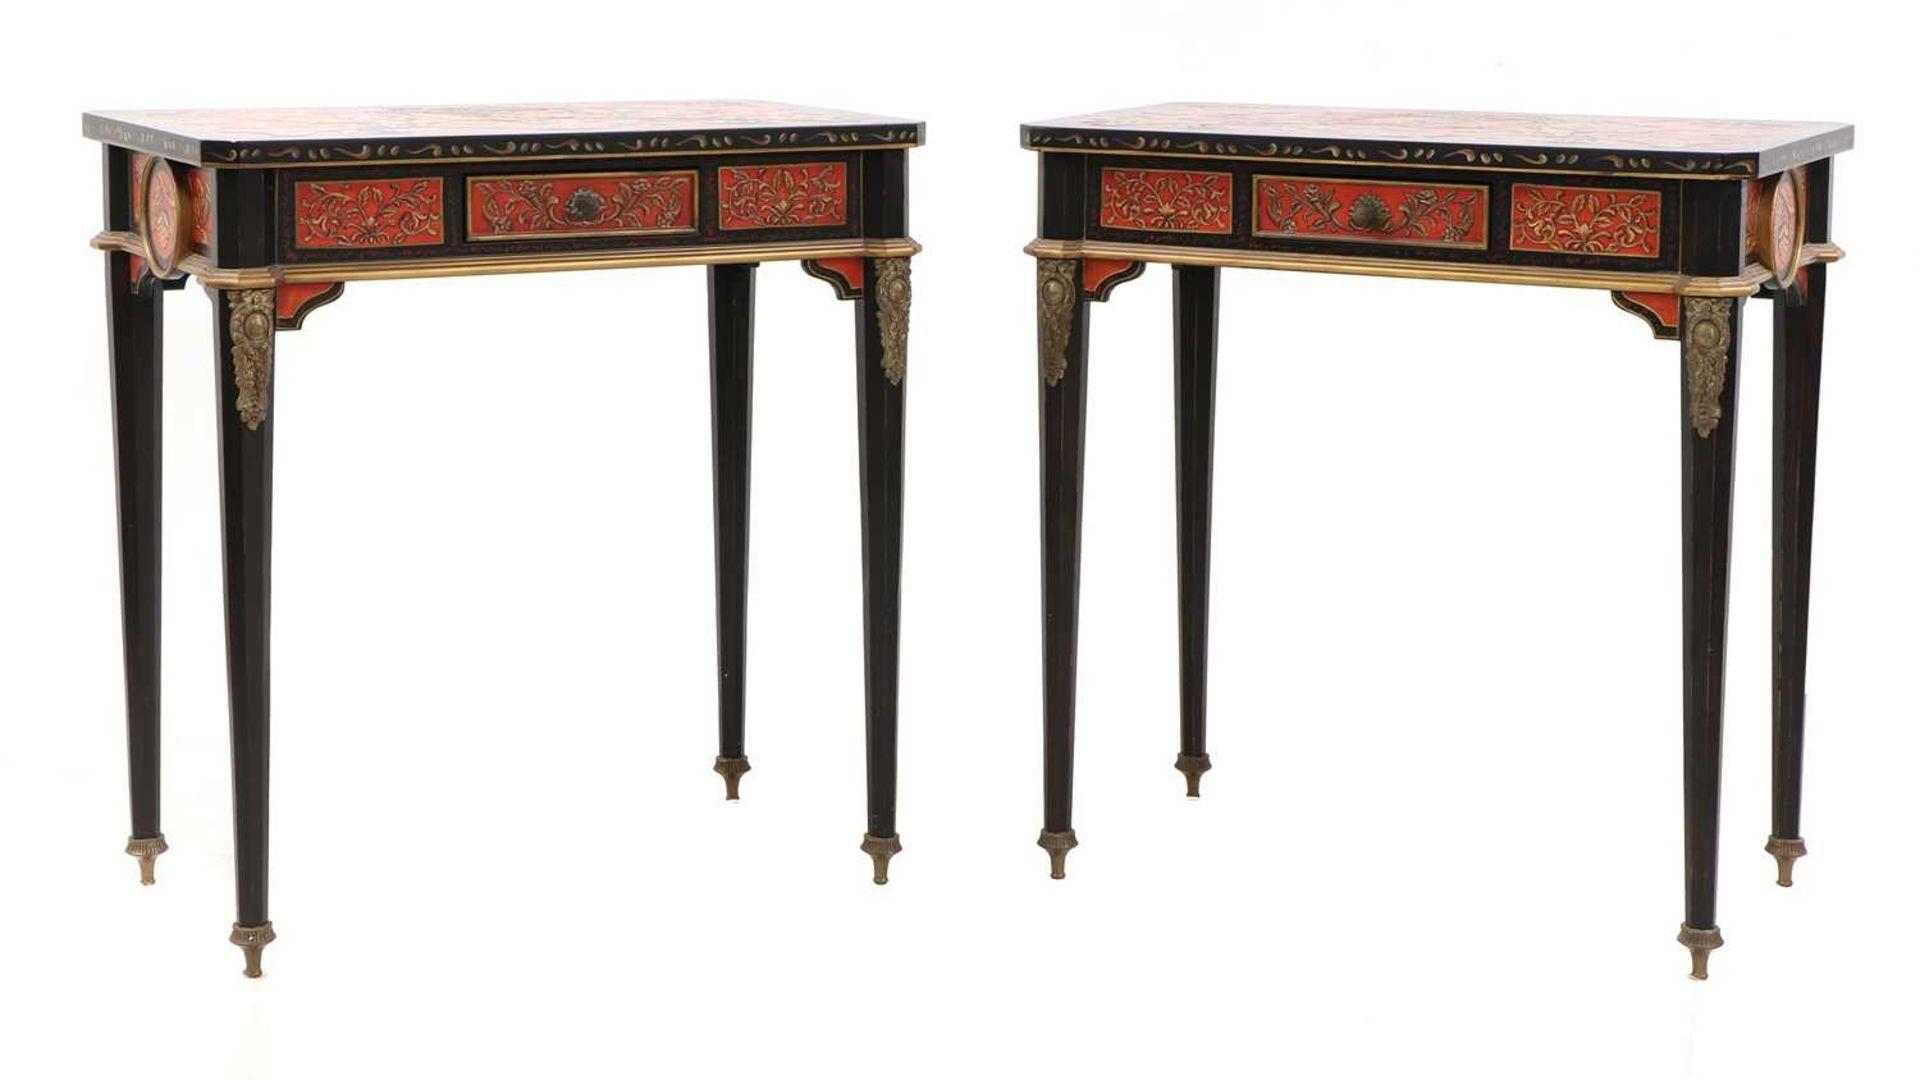 A pair of Napoleon III-style lacquered chinoiserie side tables, - Image 2 of 10